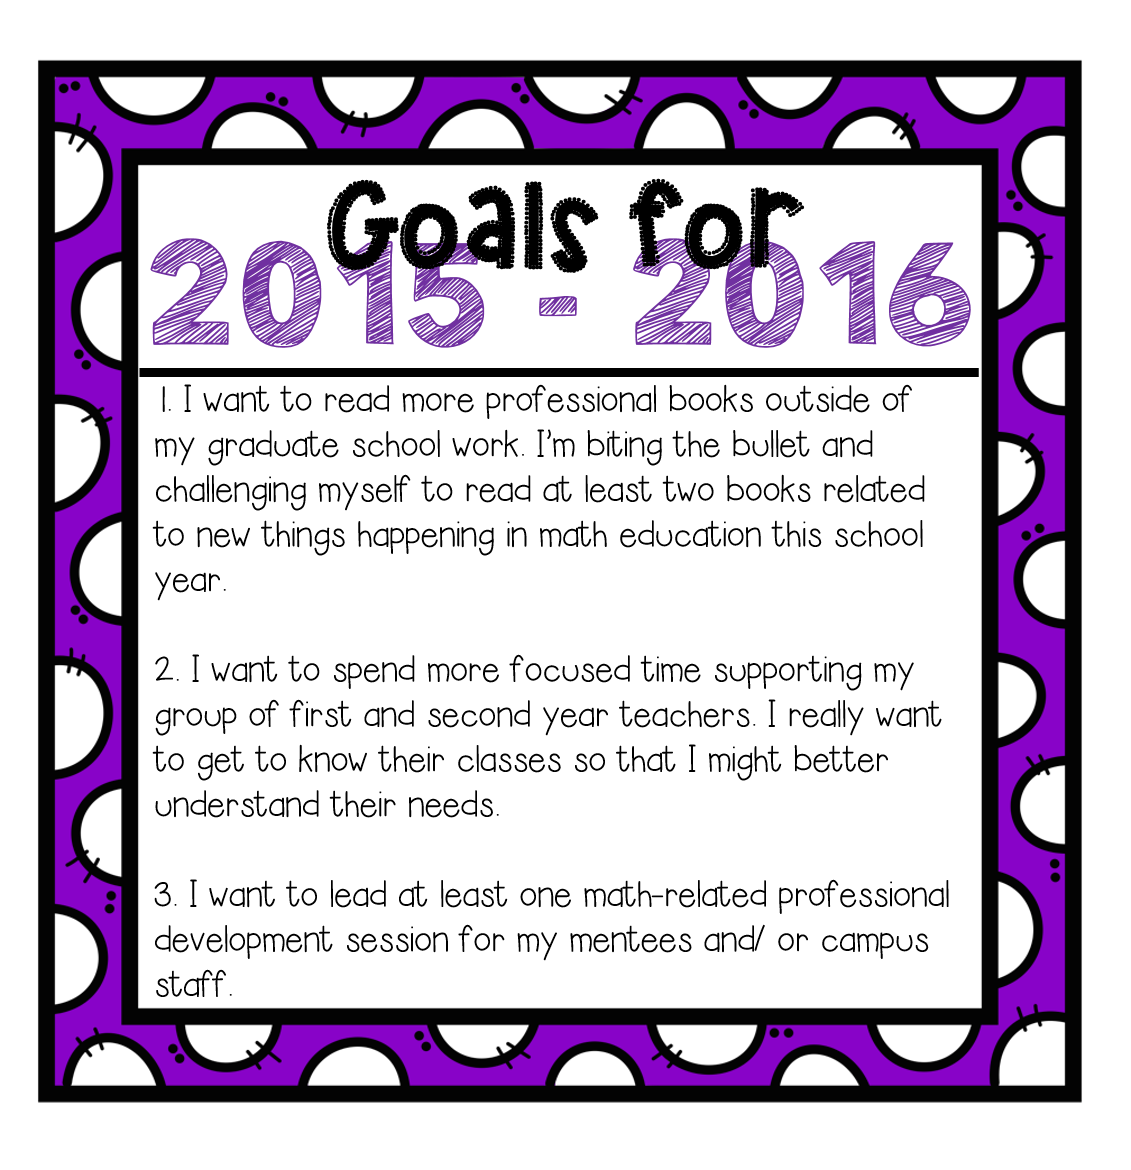 math rocks mission 3 goal setting because my role this year is not as a classroom teacher my goals are more related to my professional growth and work as a mentor teacher